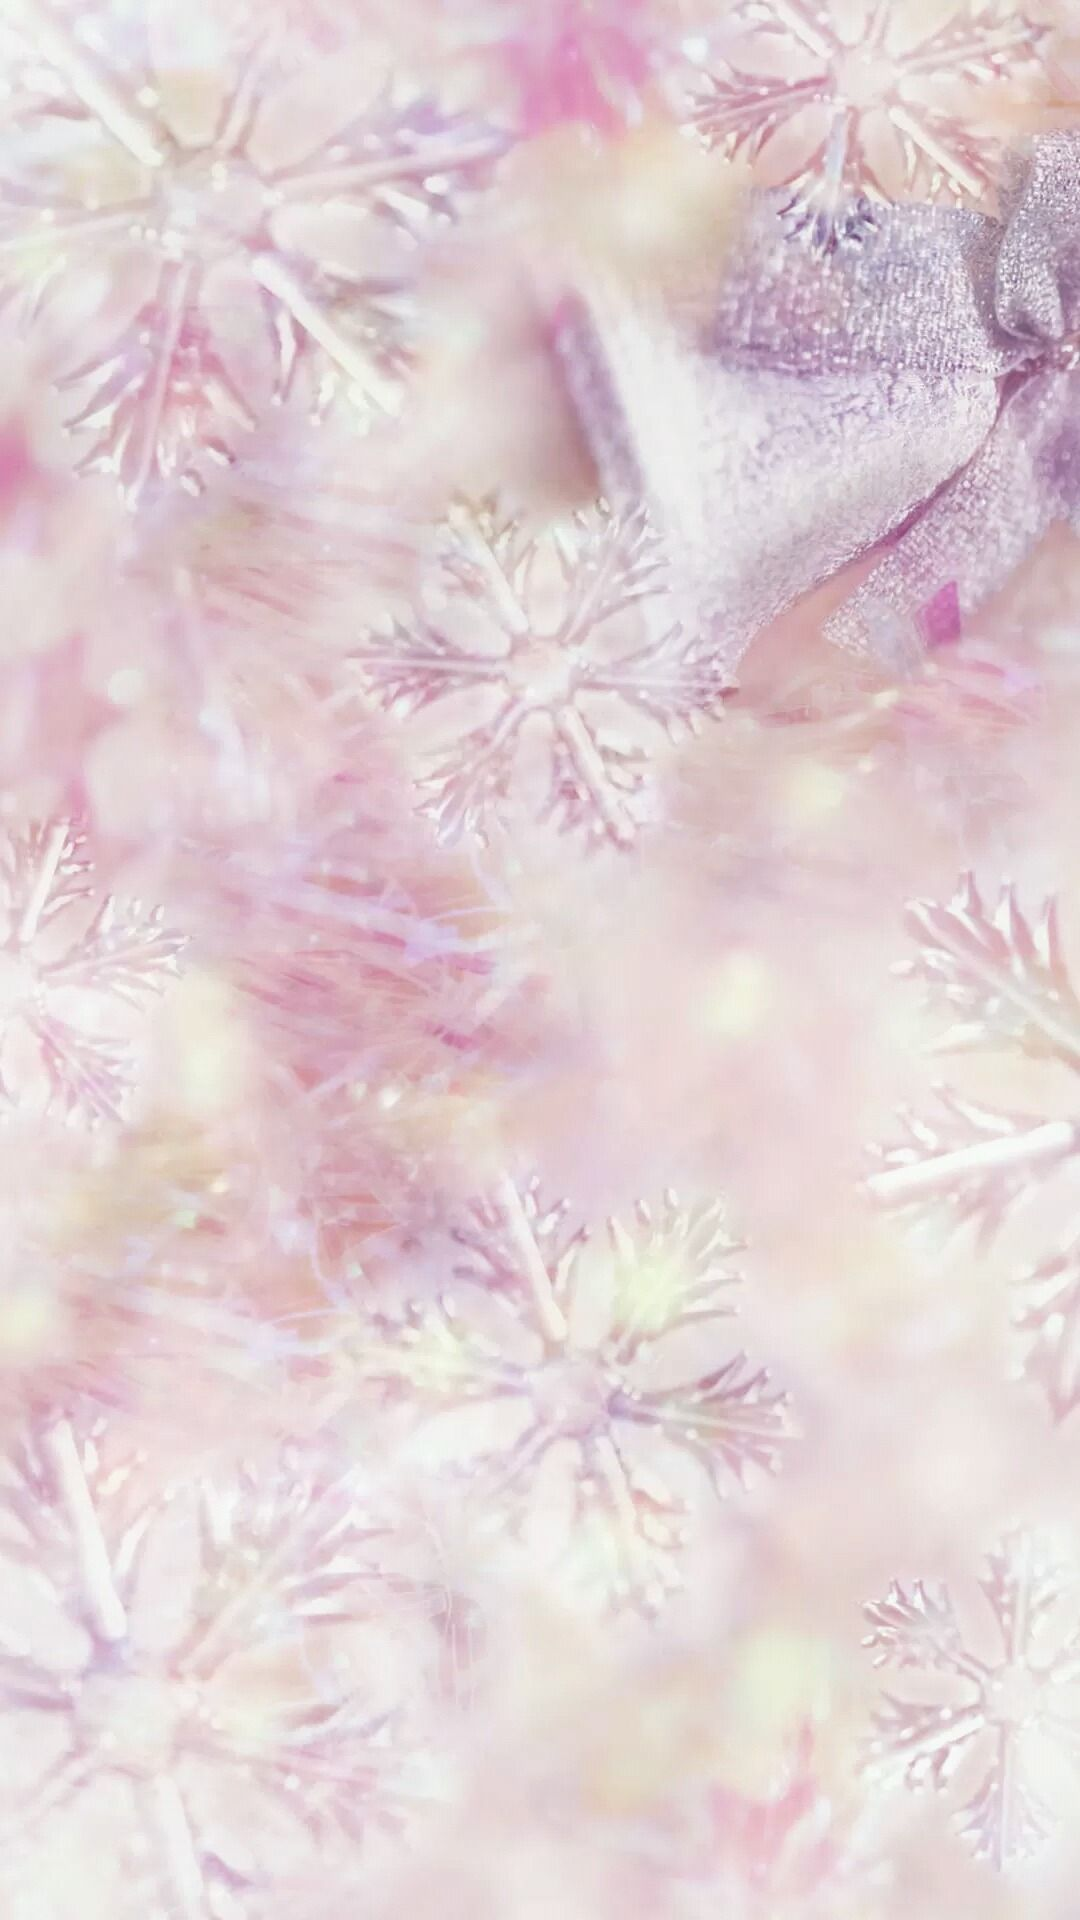 Dreamy Snowflakes Tap To See More Winter Frozen Beautiful